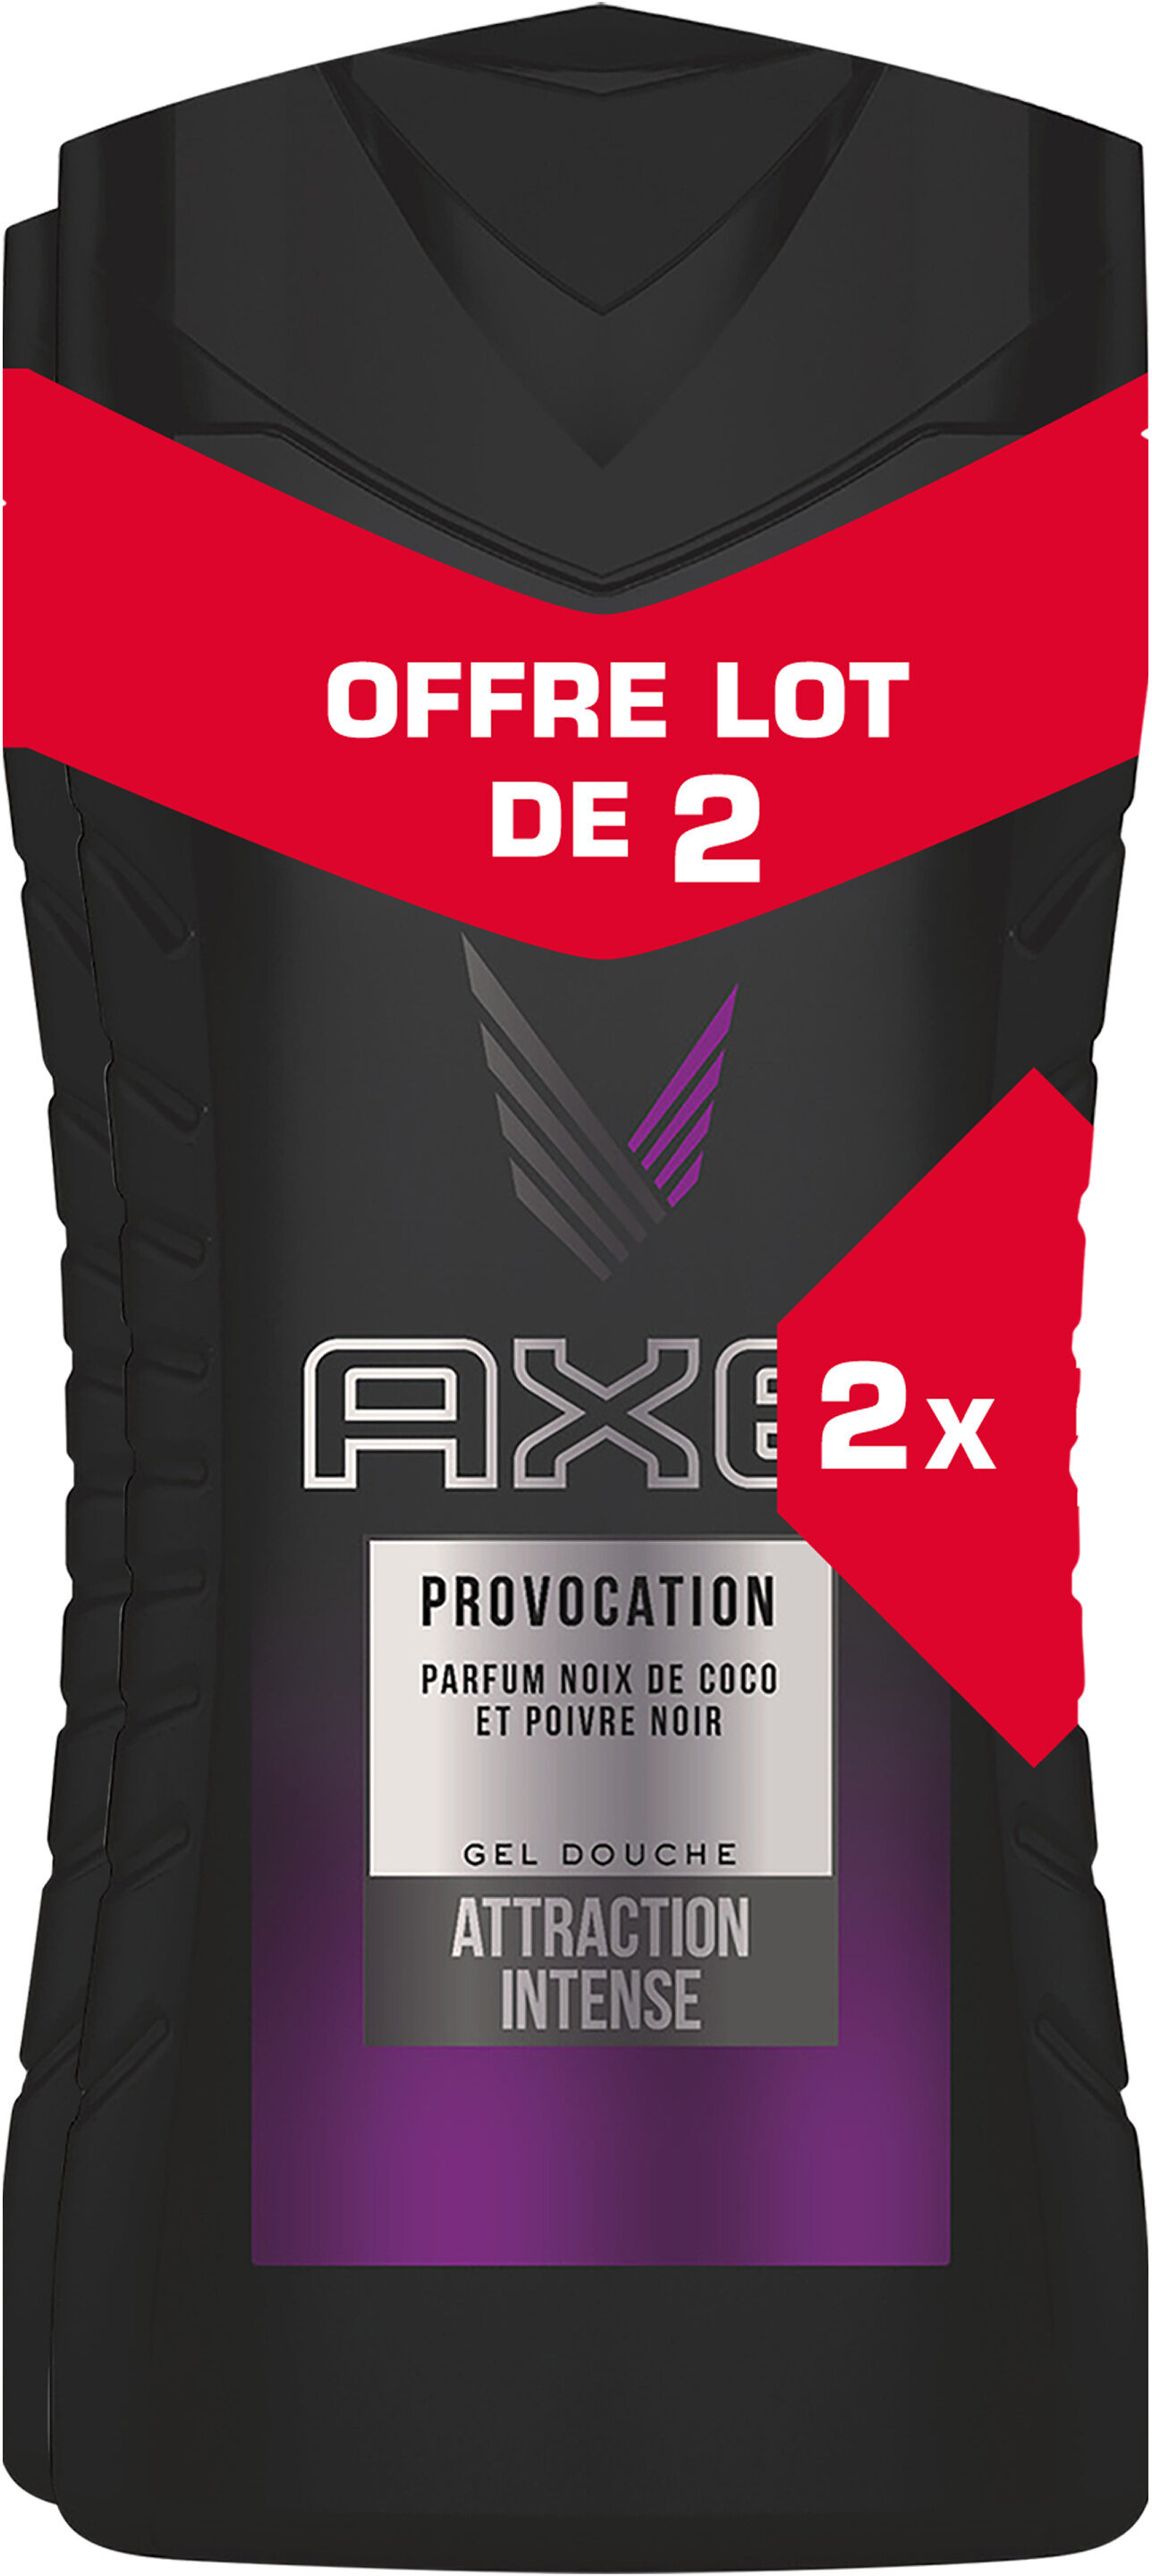 AXE Gel Douche Provocation Lot 2x250ml - Product - fr